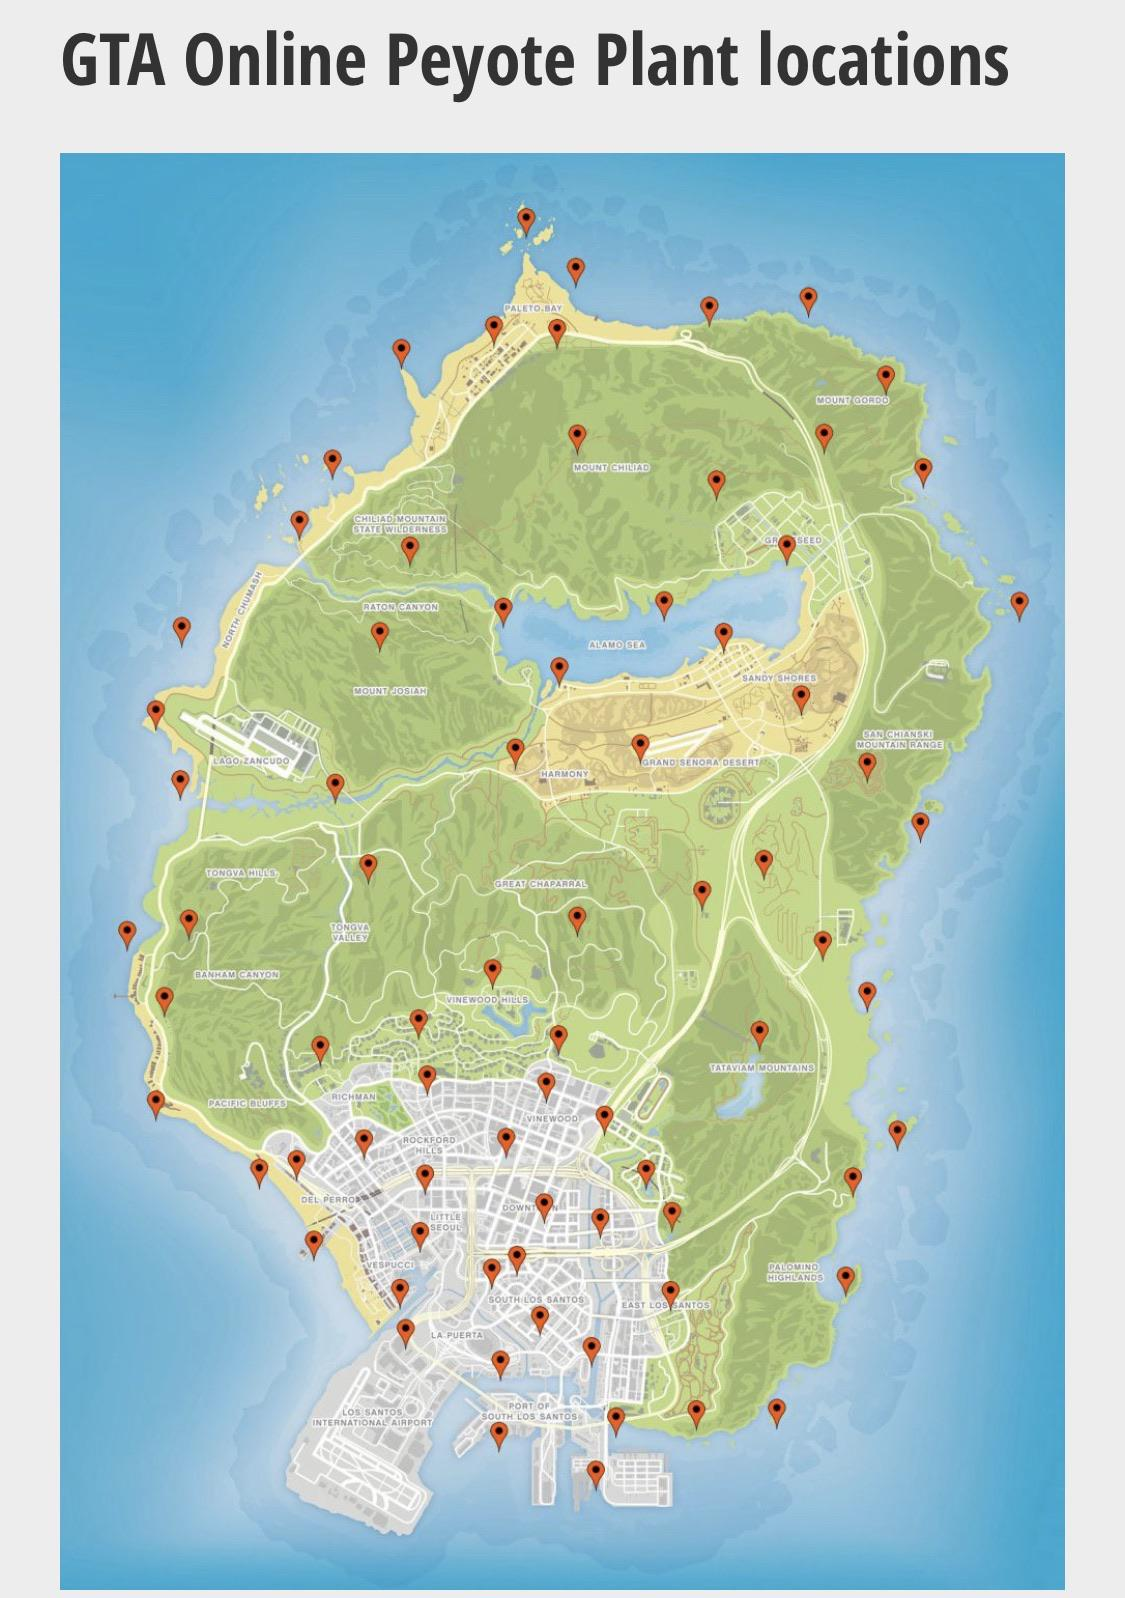 GTA Online Peyote Plants Locations - GTA BOOM